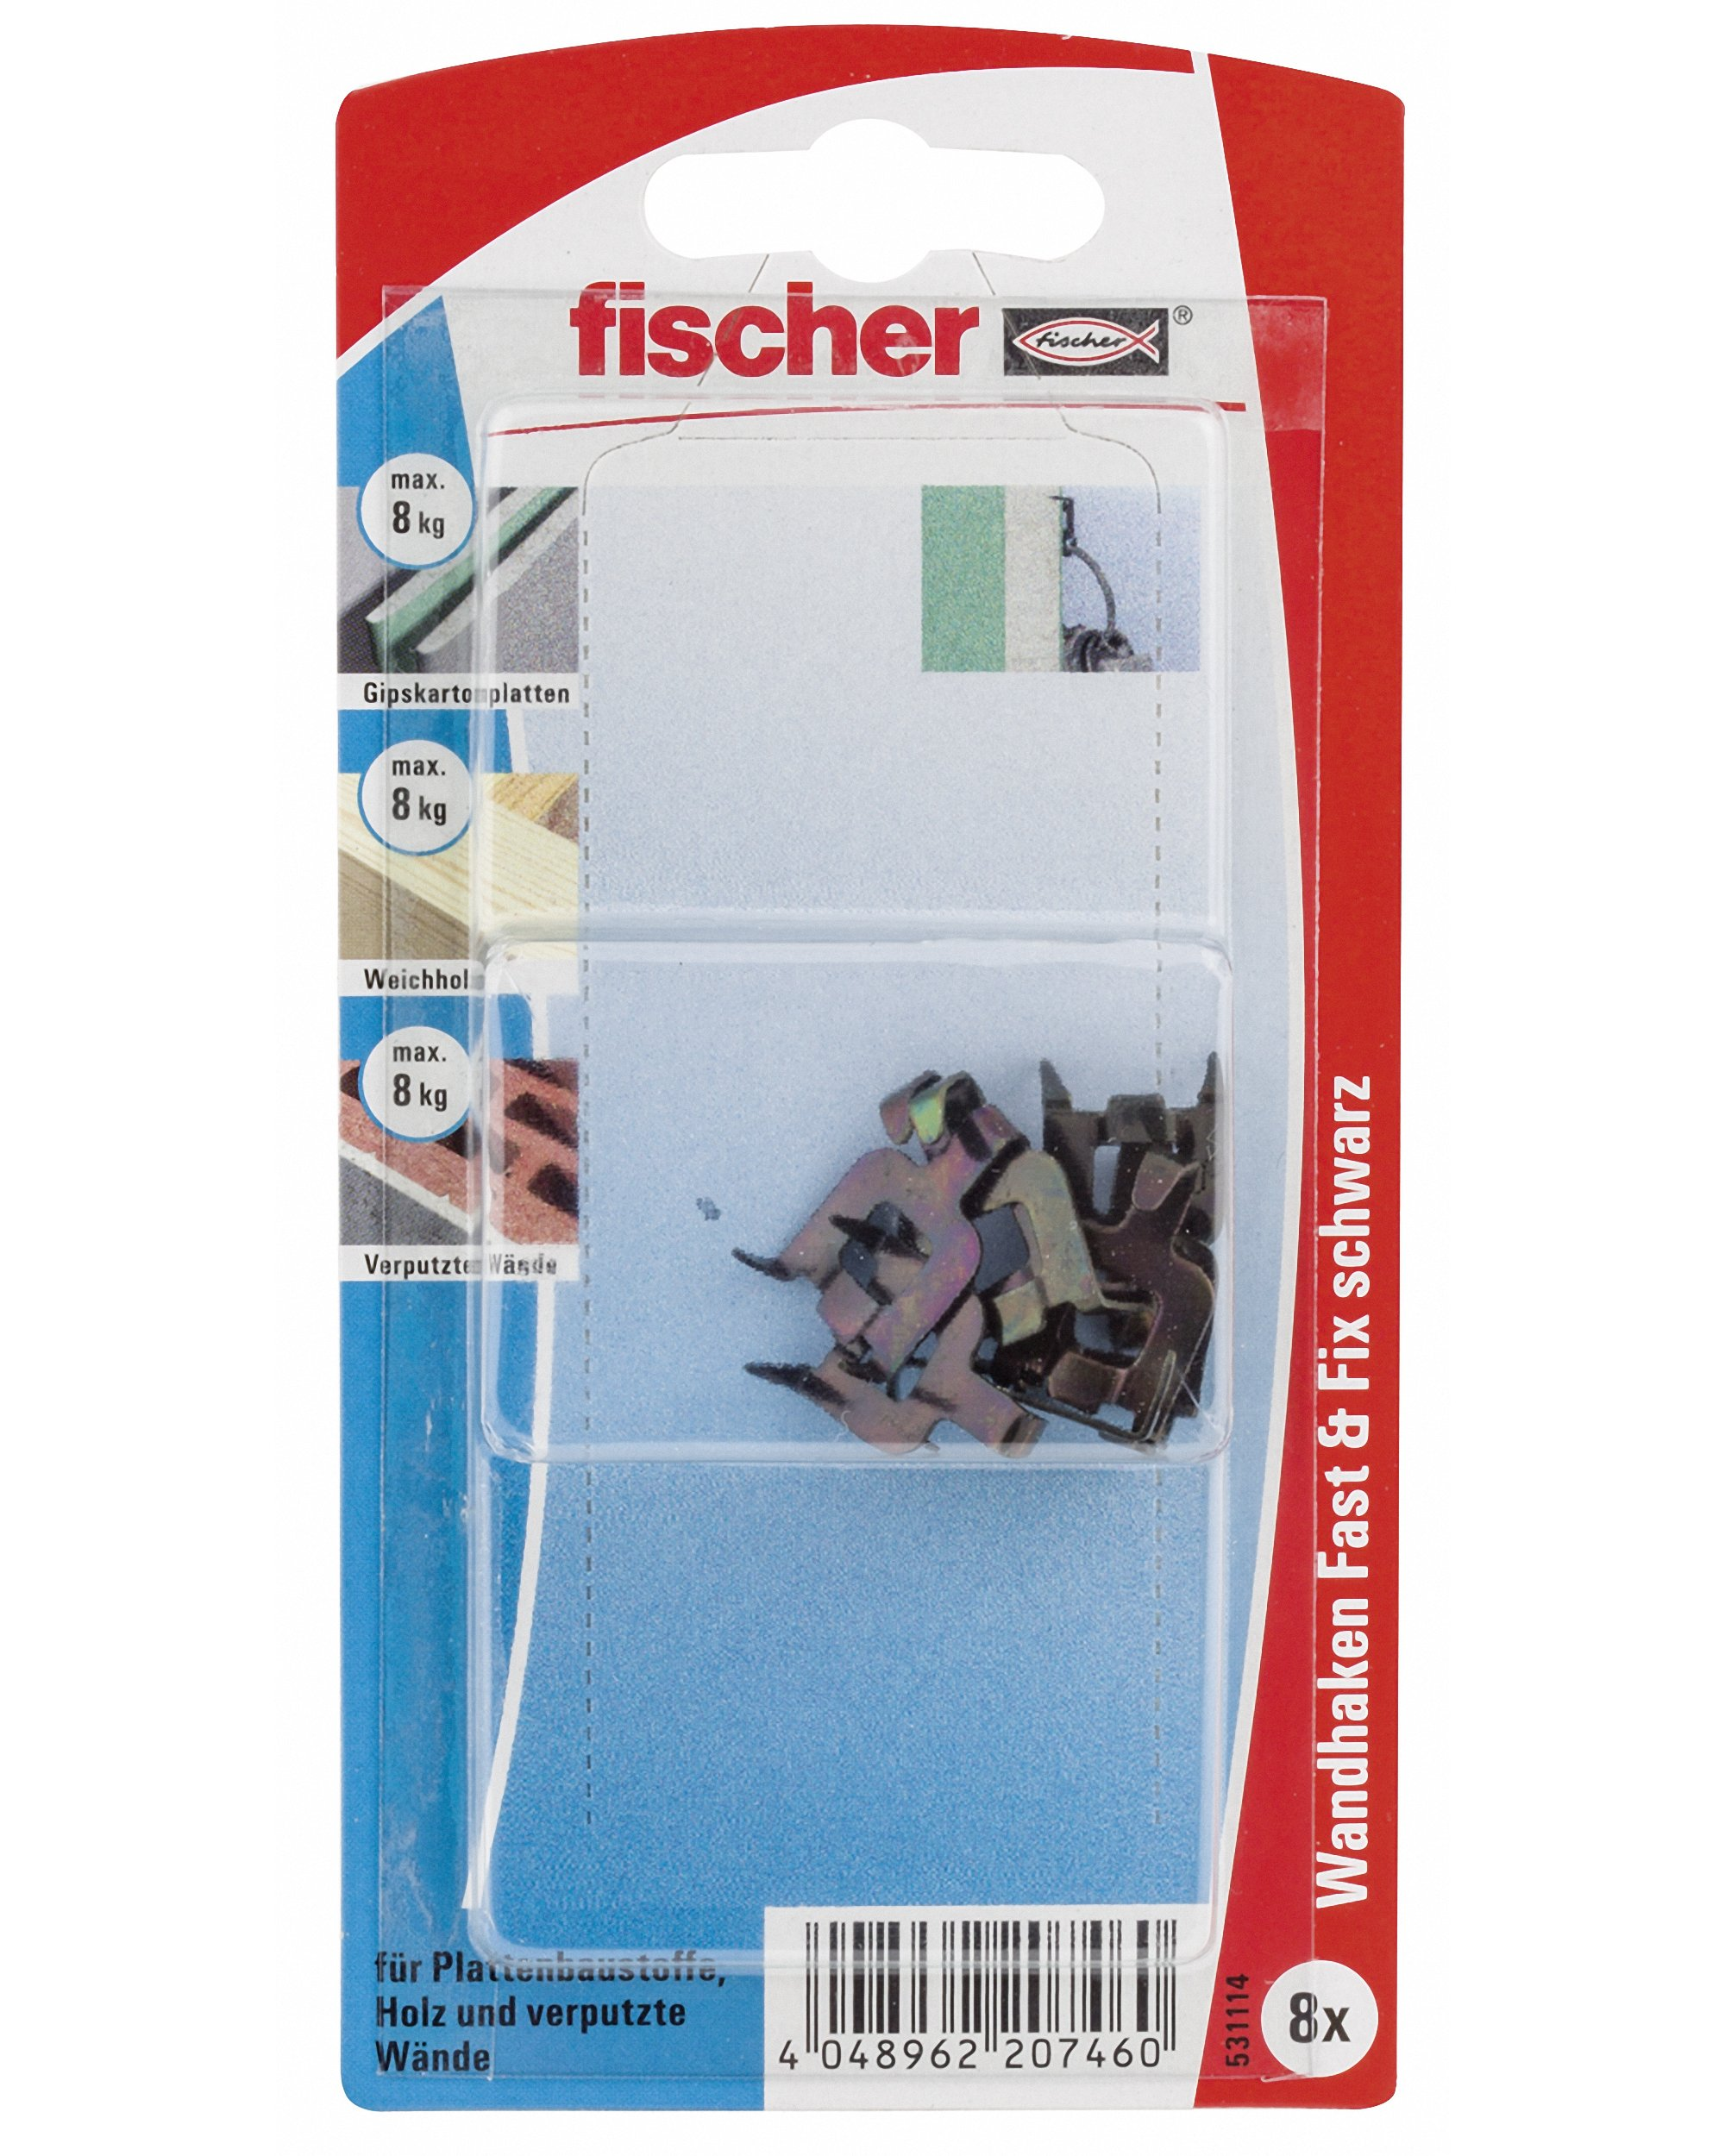 Fischer 531114'' Fast and Fix Black Wall Hook - Multi-Colour (8-Piece)